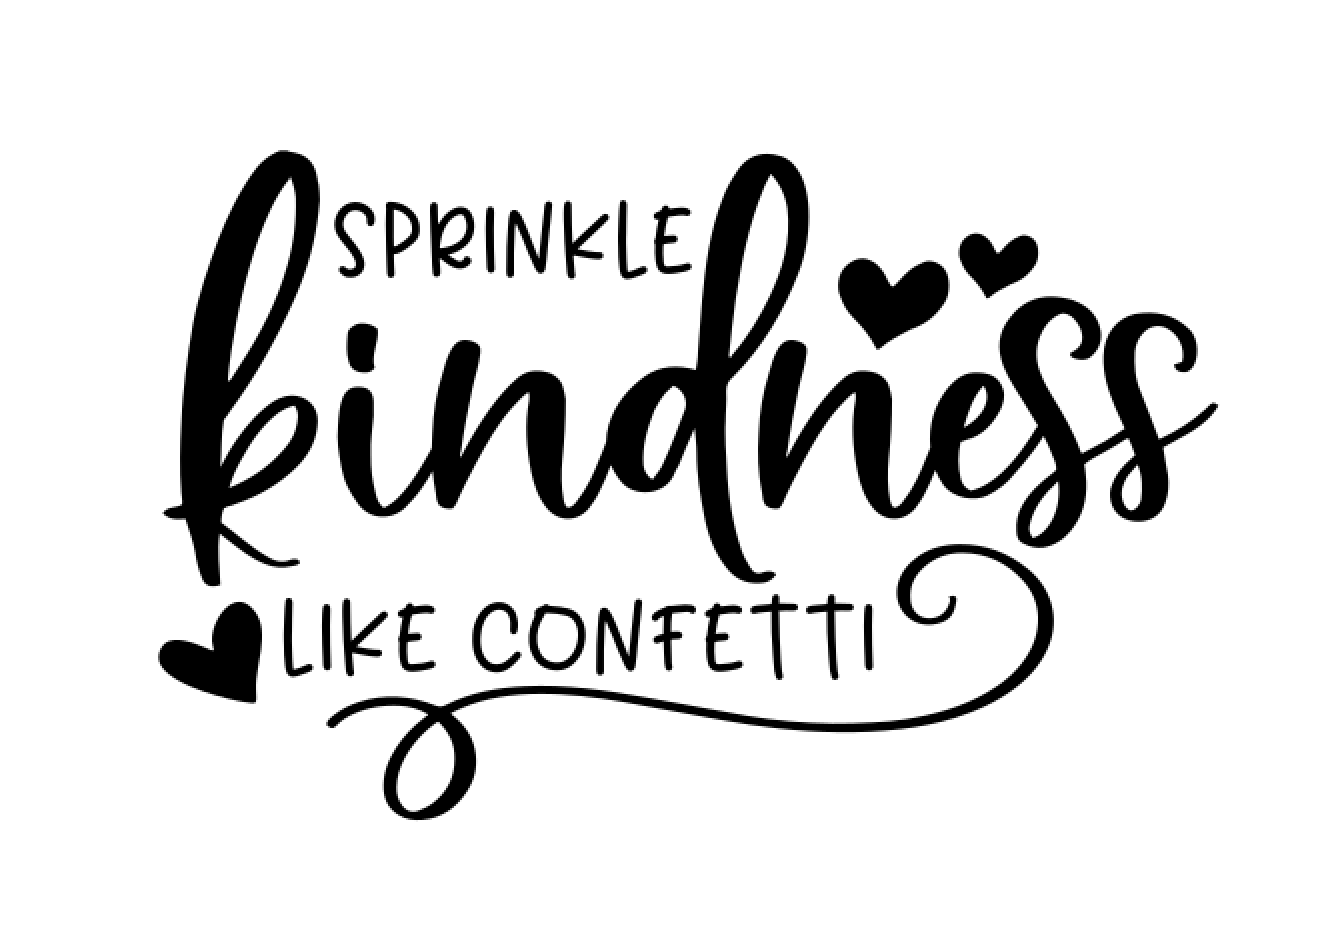 47 Sprinkle kindness like